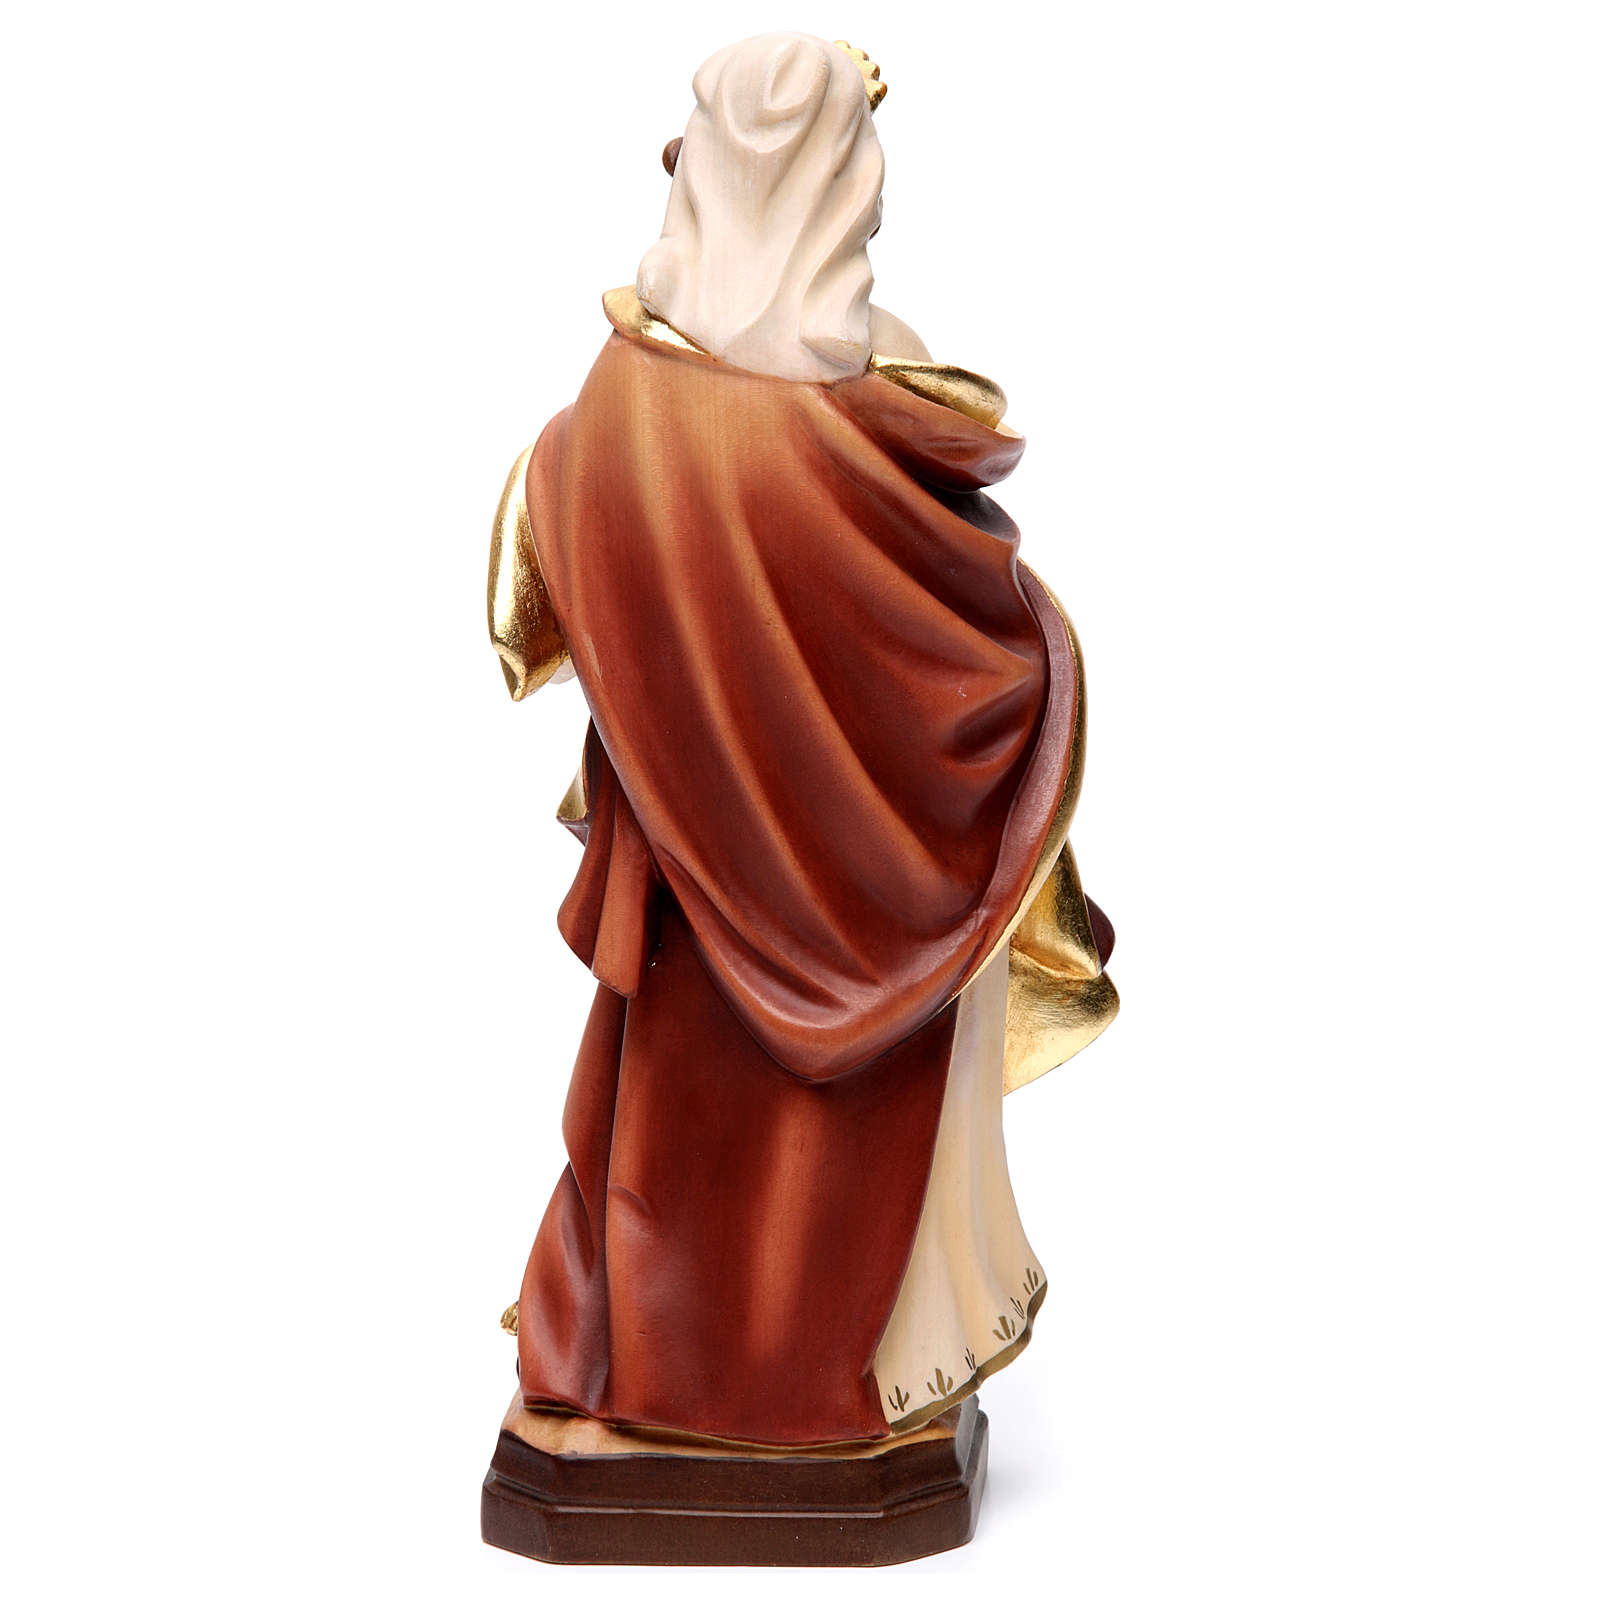 Statue of Mary Magdalene in painted wood with red dress and pitcher 4